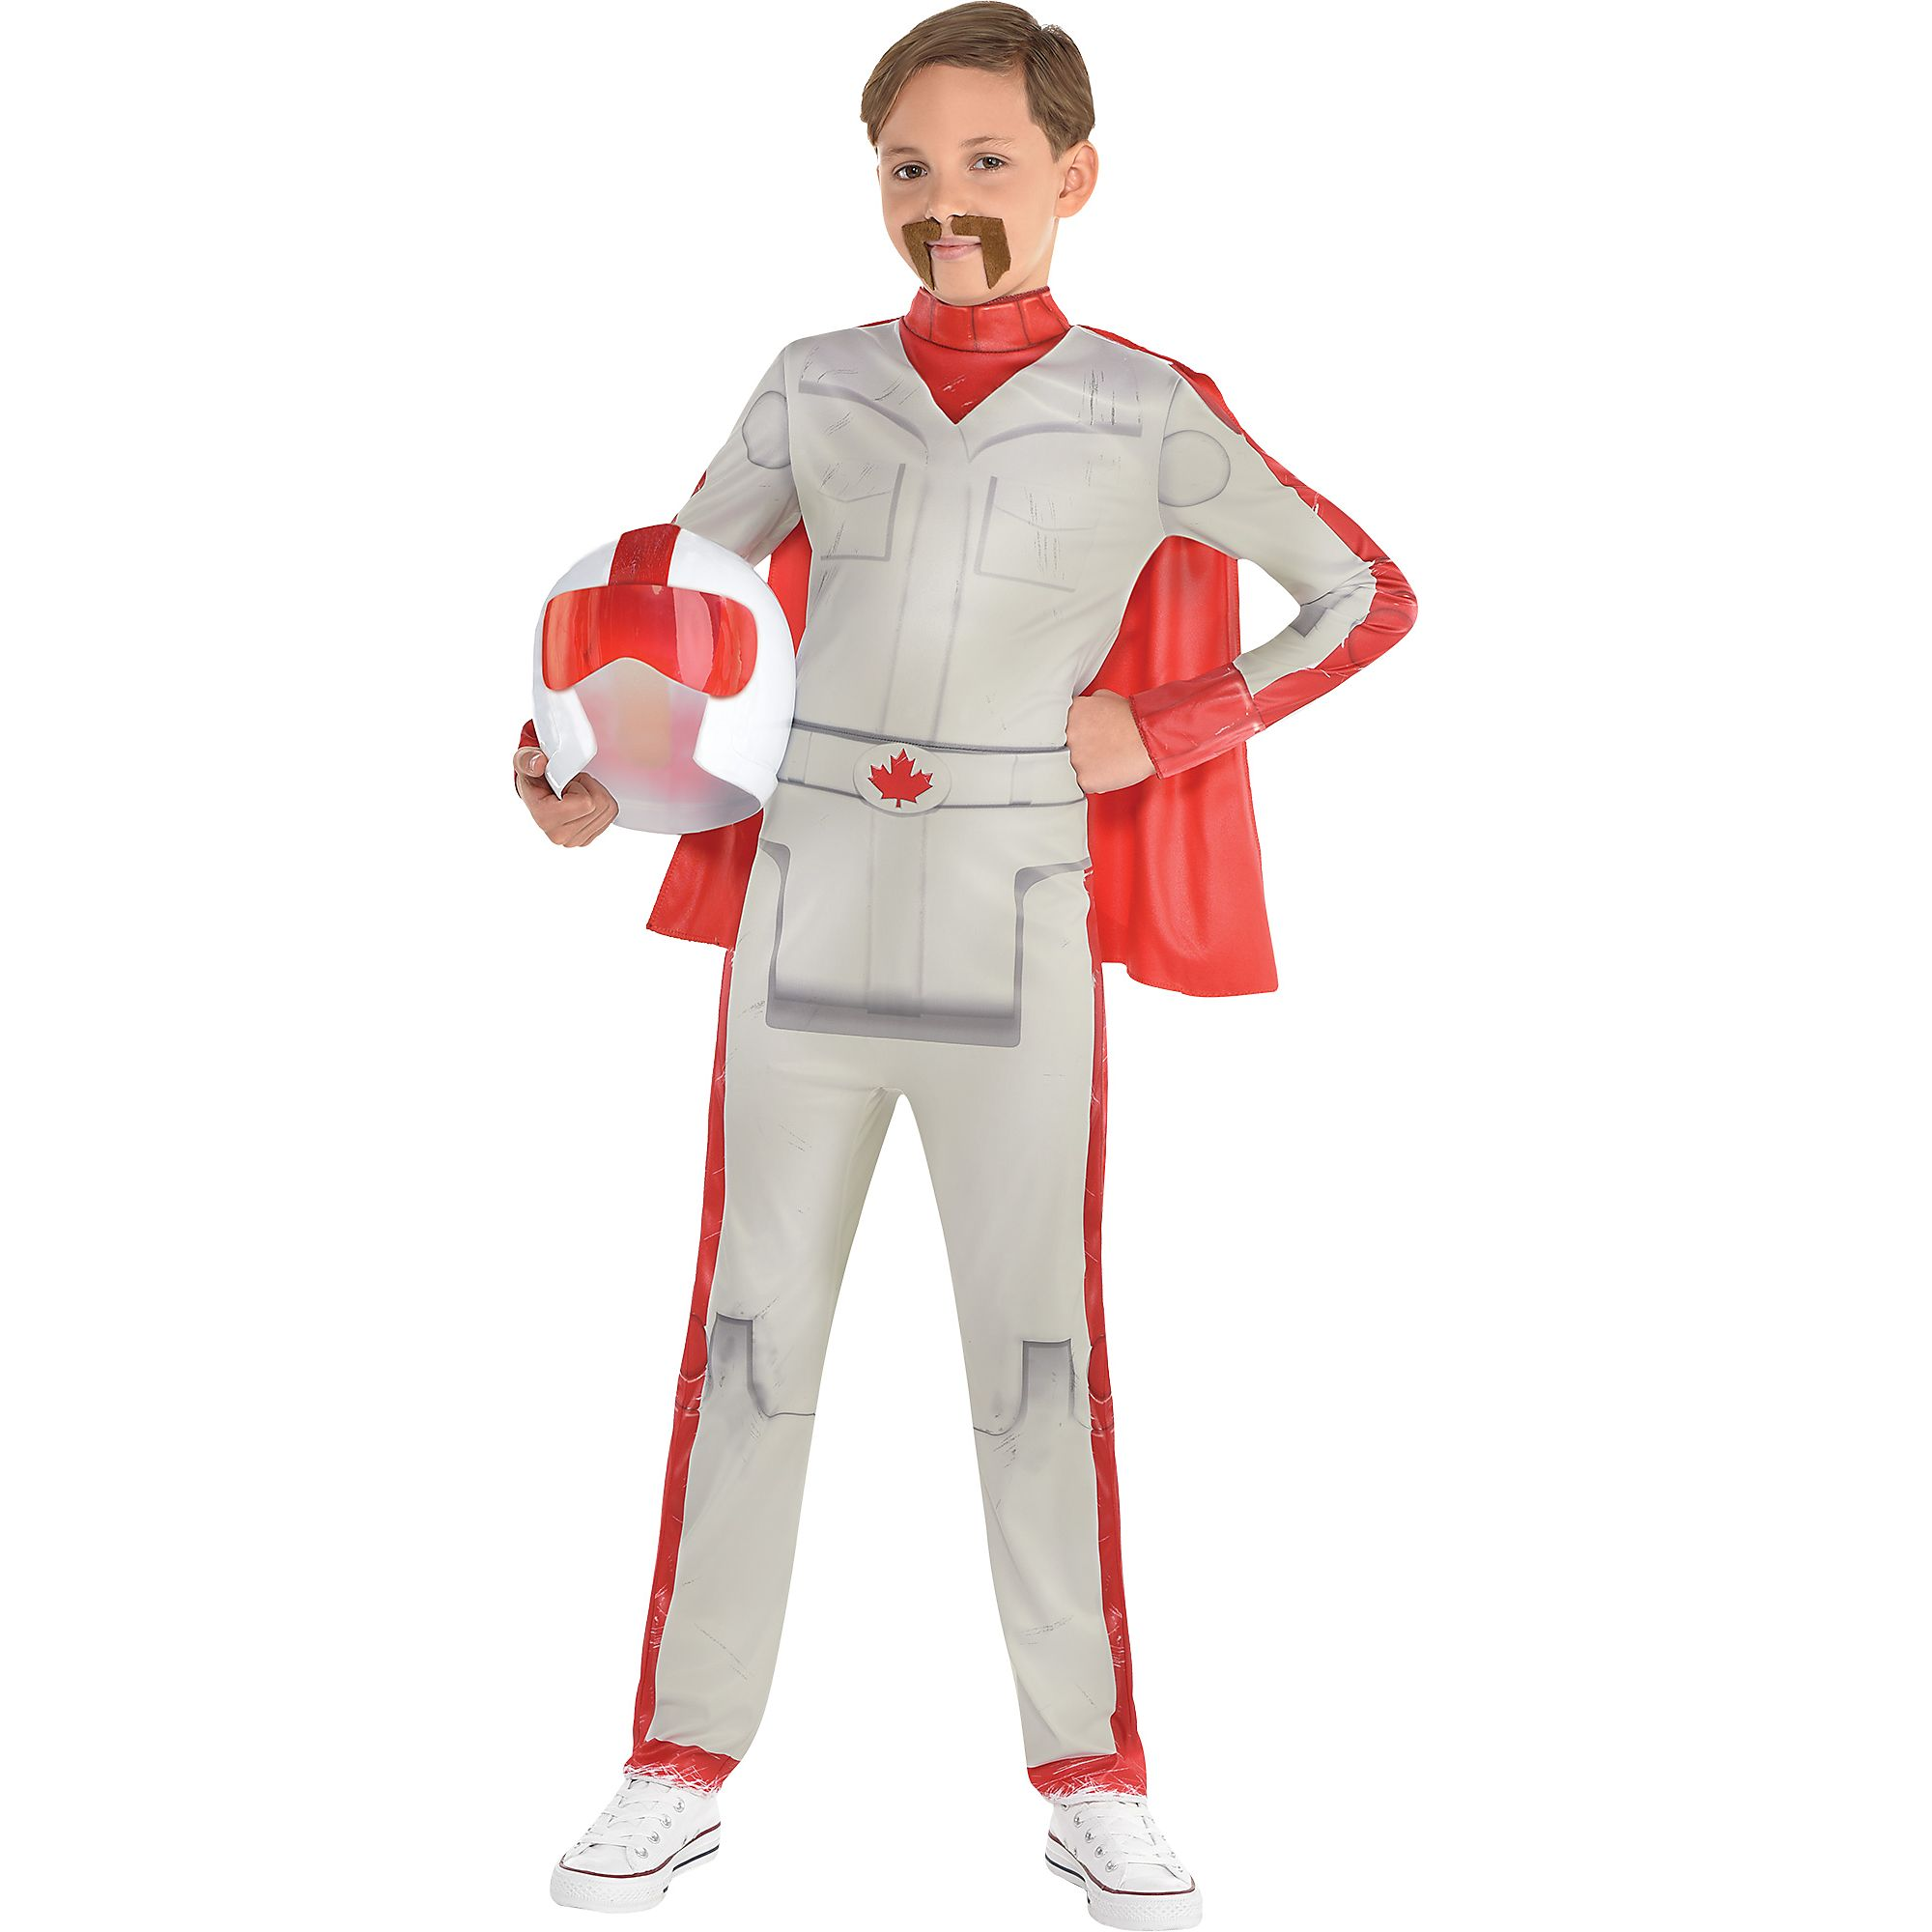 Toy Story 4 Halloween Costumes.Duke Caboom Halloween Costume For Boys Toy Story 4 Includes